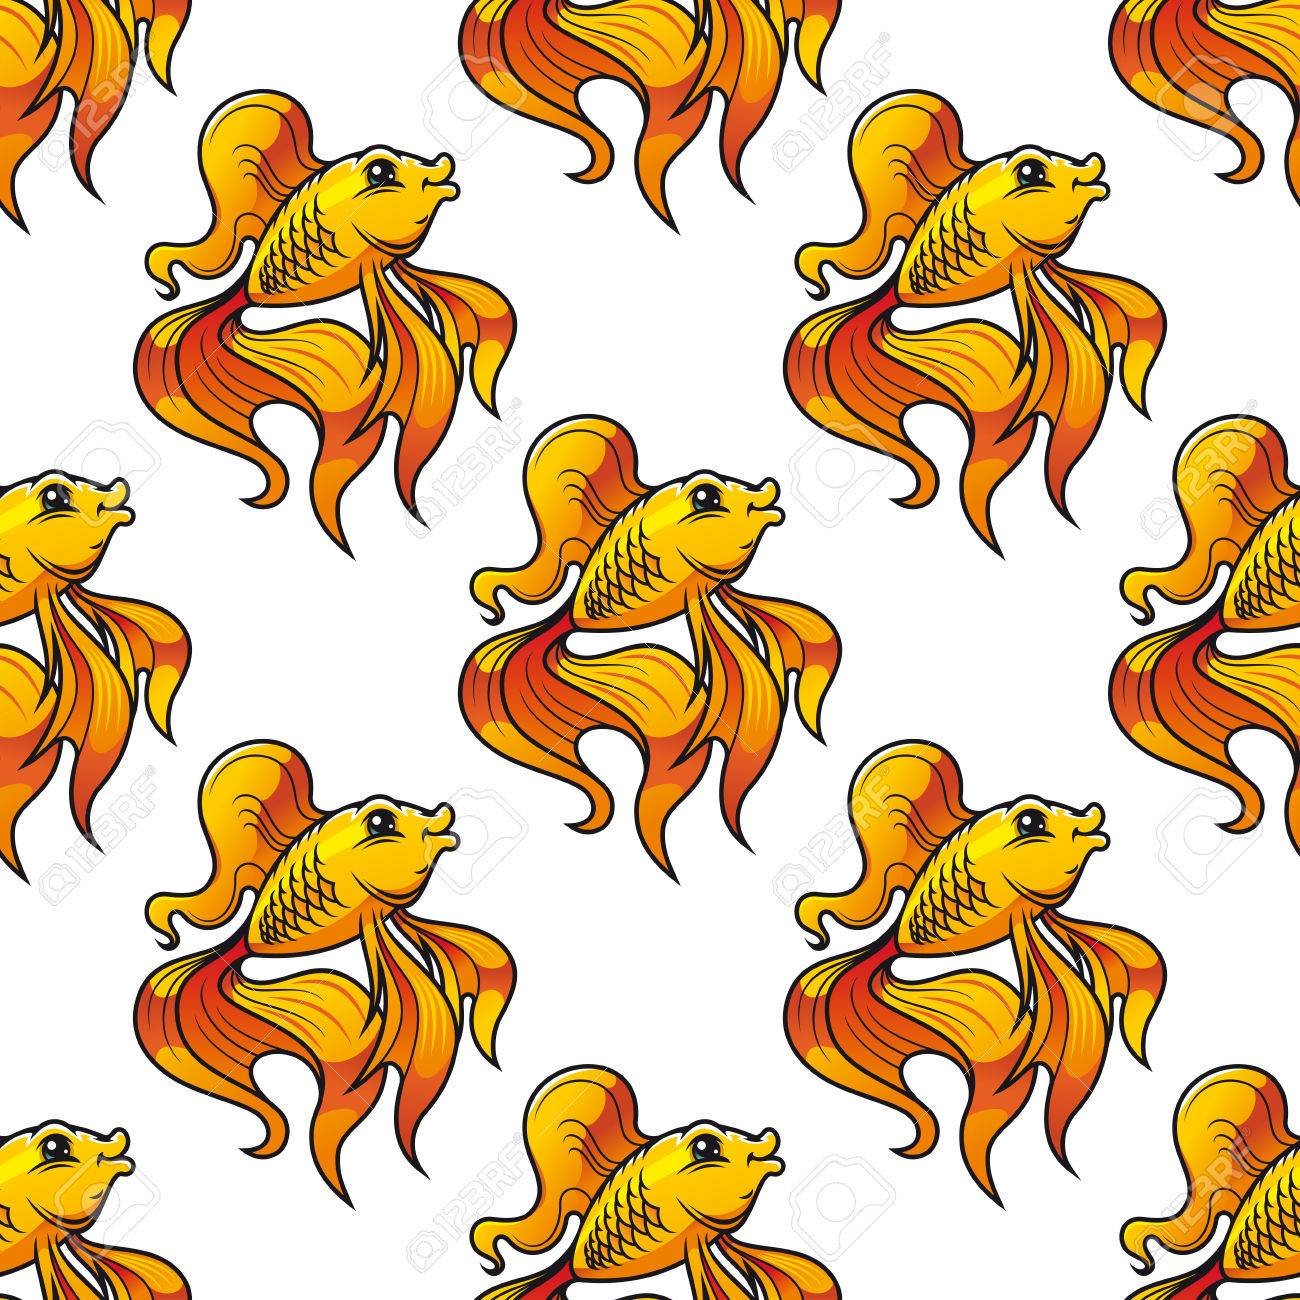 Seamless pattern of colorful golden ornamental goldfish with long fins and tails suitable for textile, tiles or wallpaper, square format Stock Vector - 27165837